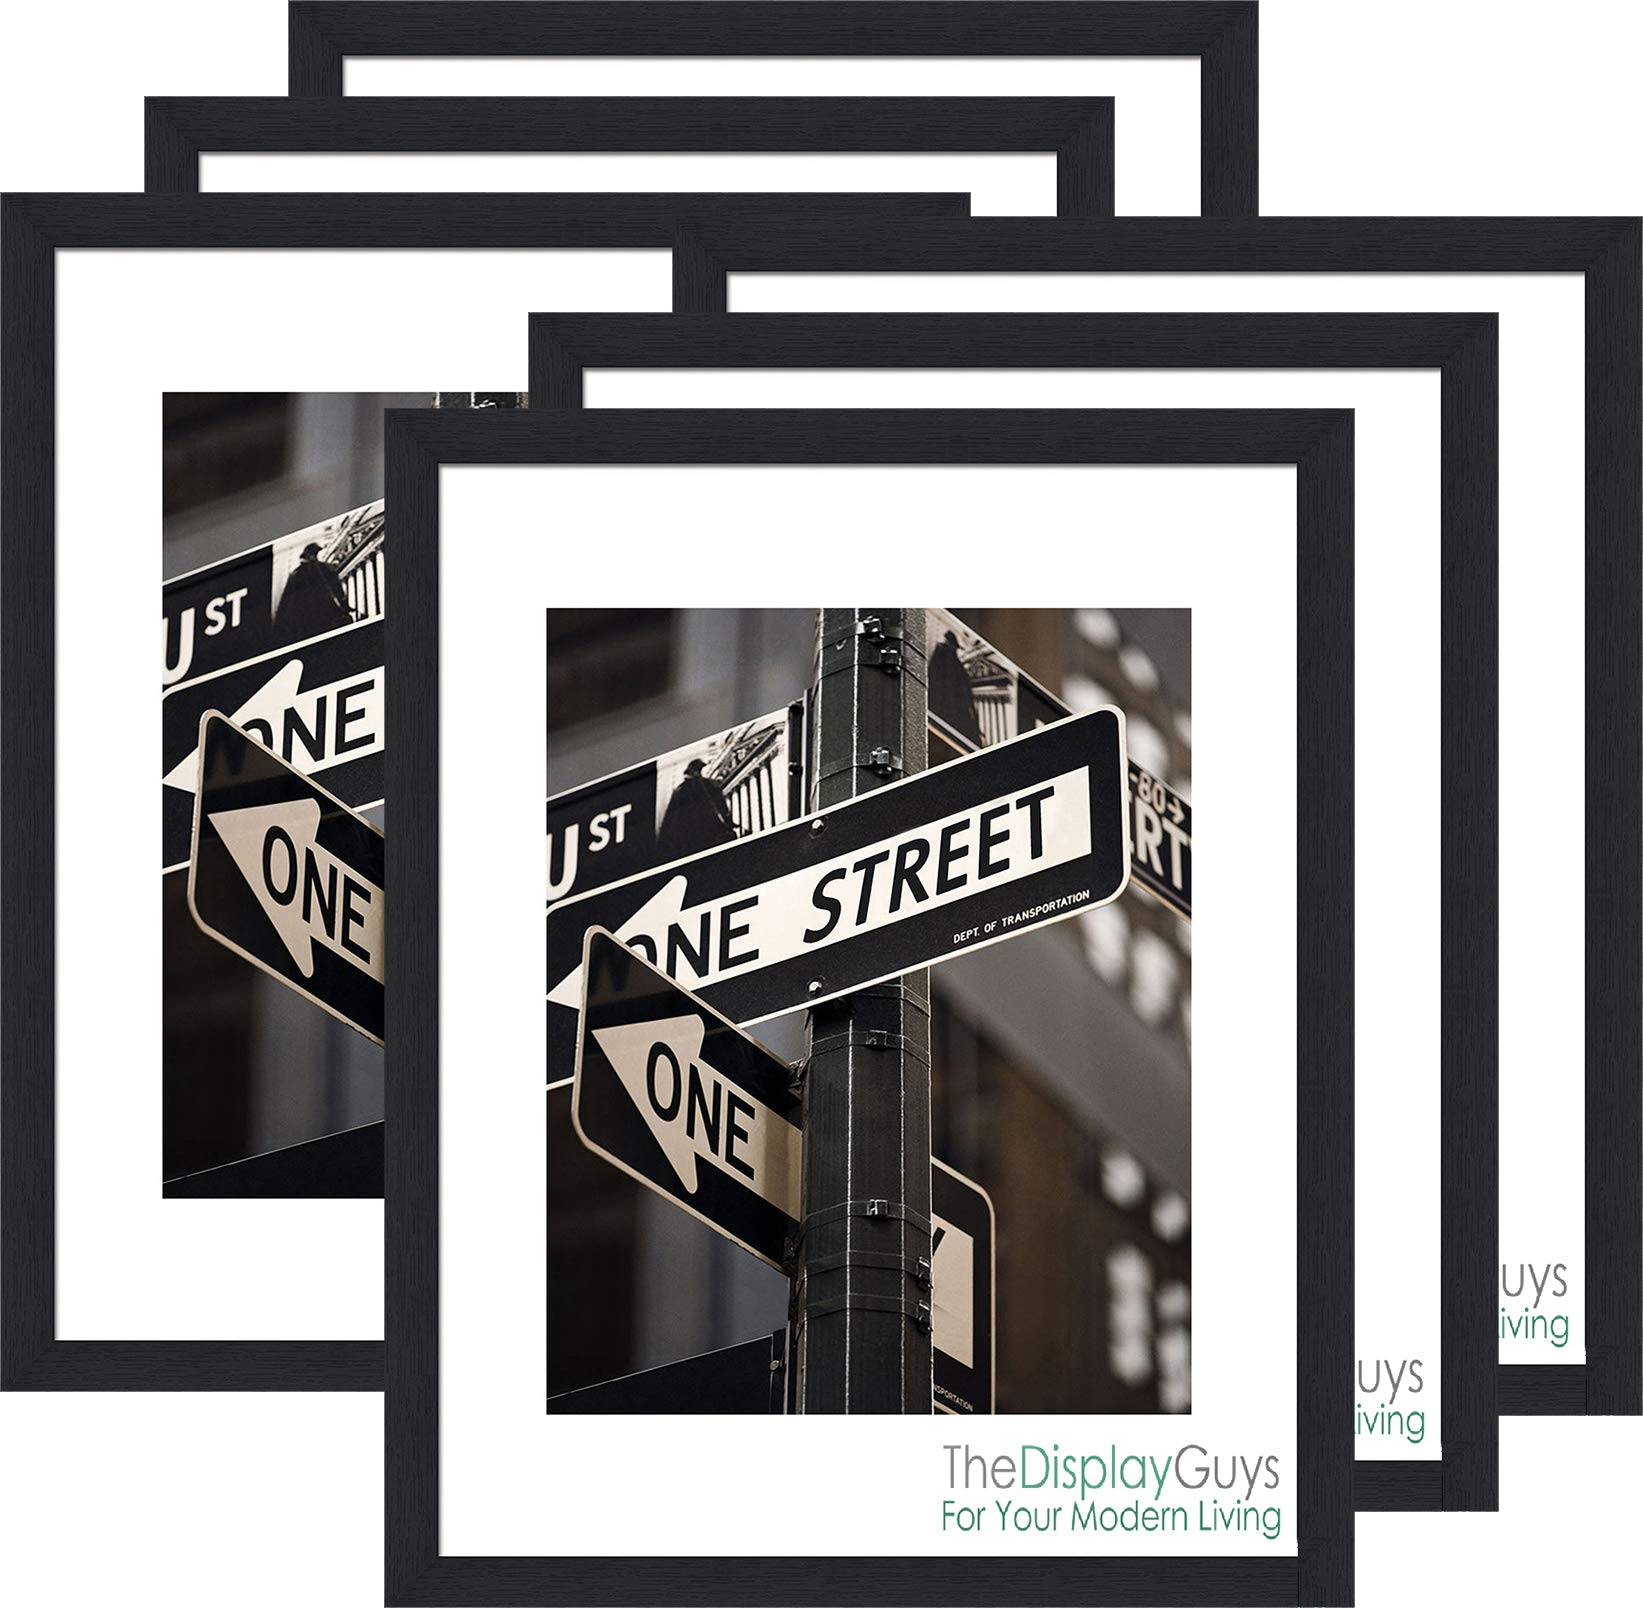 The Display Guys 11x14 Black Photo Picture Wooden Frame with Mat Board for 8x10 Image, Value 6-Pack